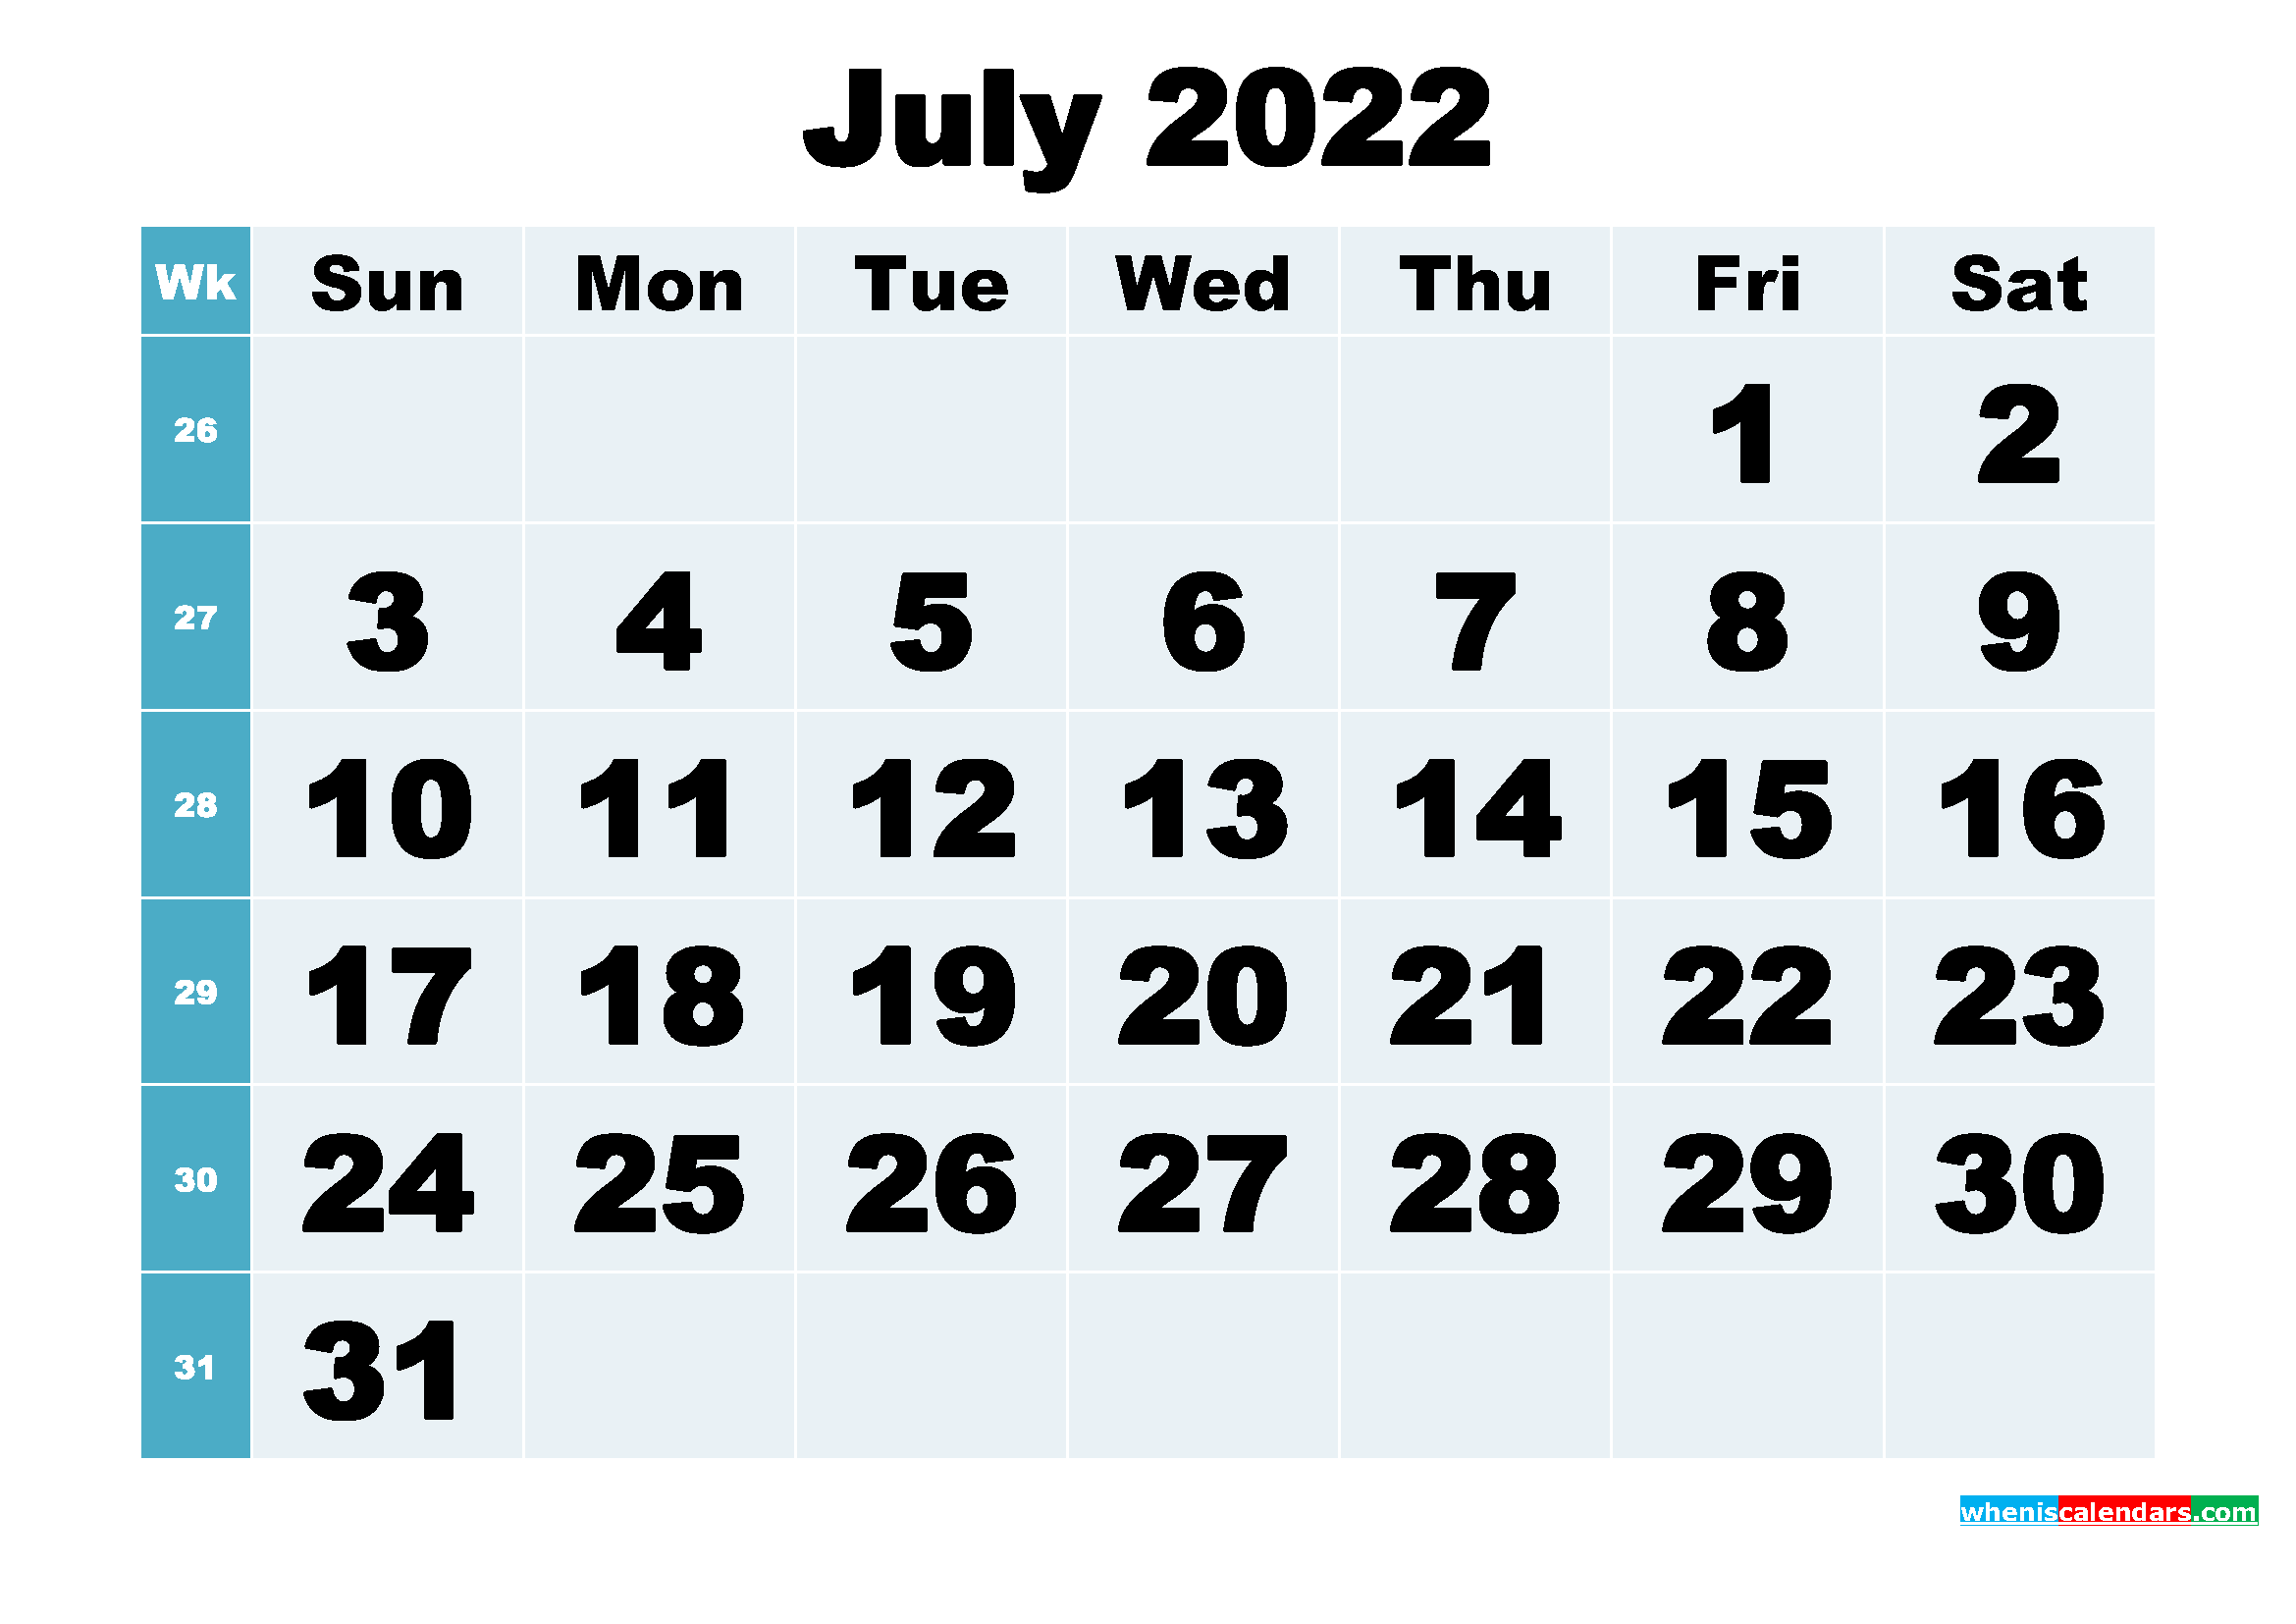 Free Printable July 2022 Calendar Word, PDF, Image